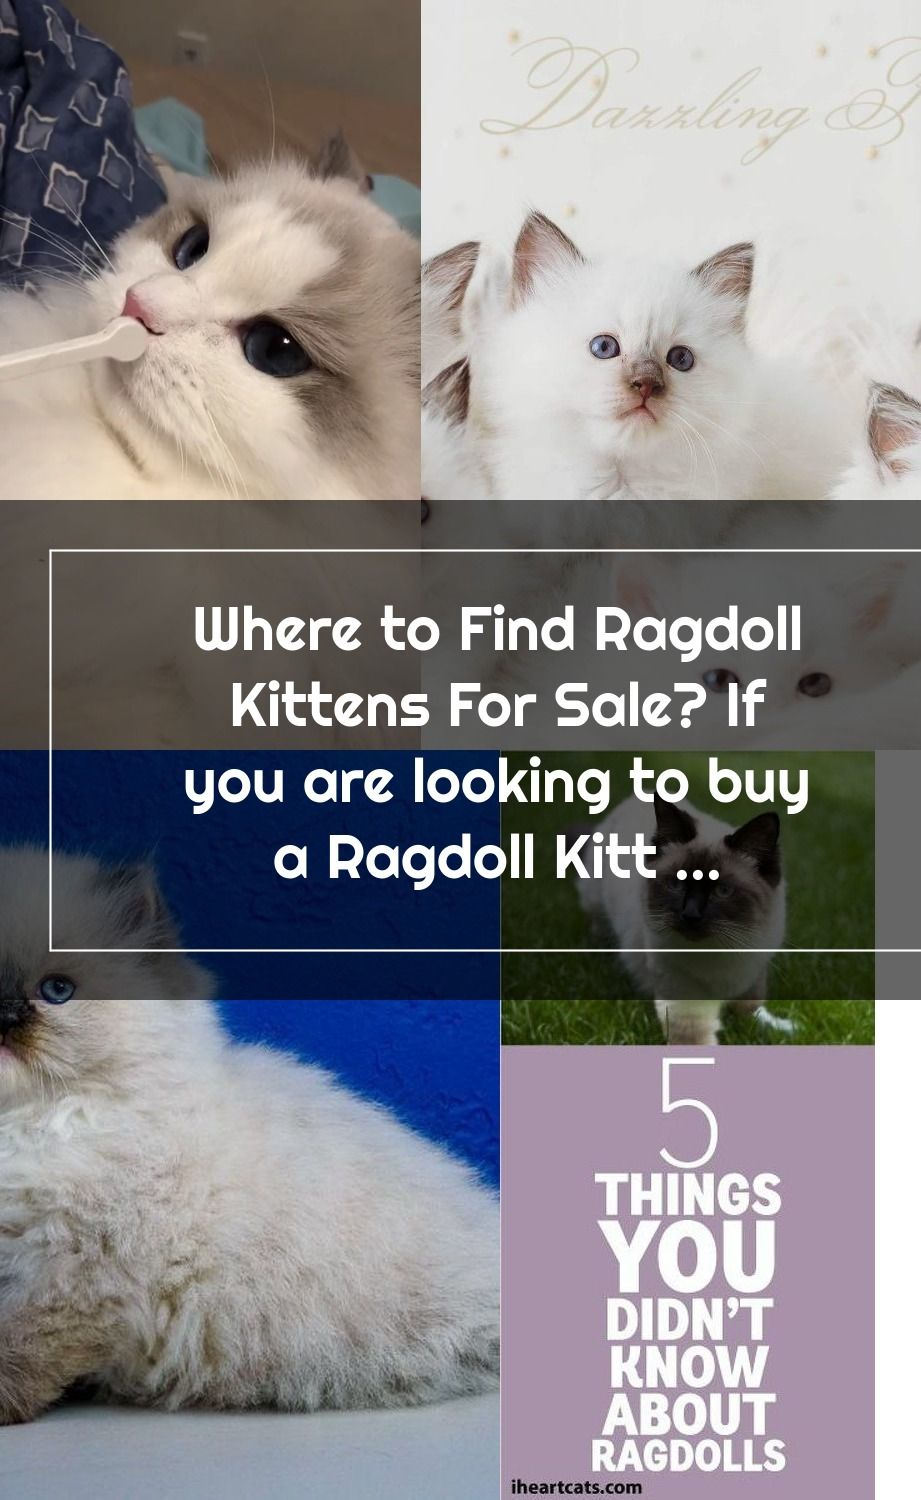 Where To Find Ragdoll Kittens For Sale If You Are Looking To Buy A Ragdoll In 2020 Ragdoll Kittens For Sale Ragdoll Kitten Kitten For Sale